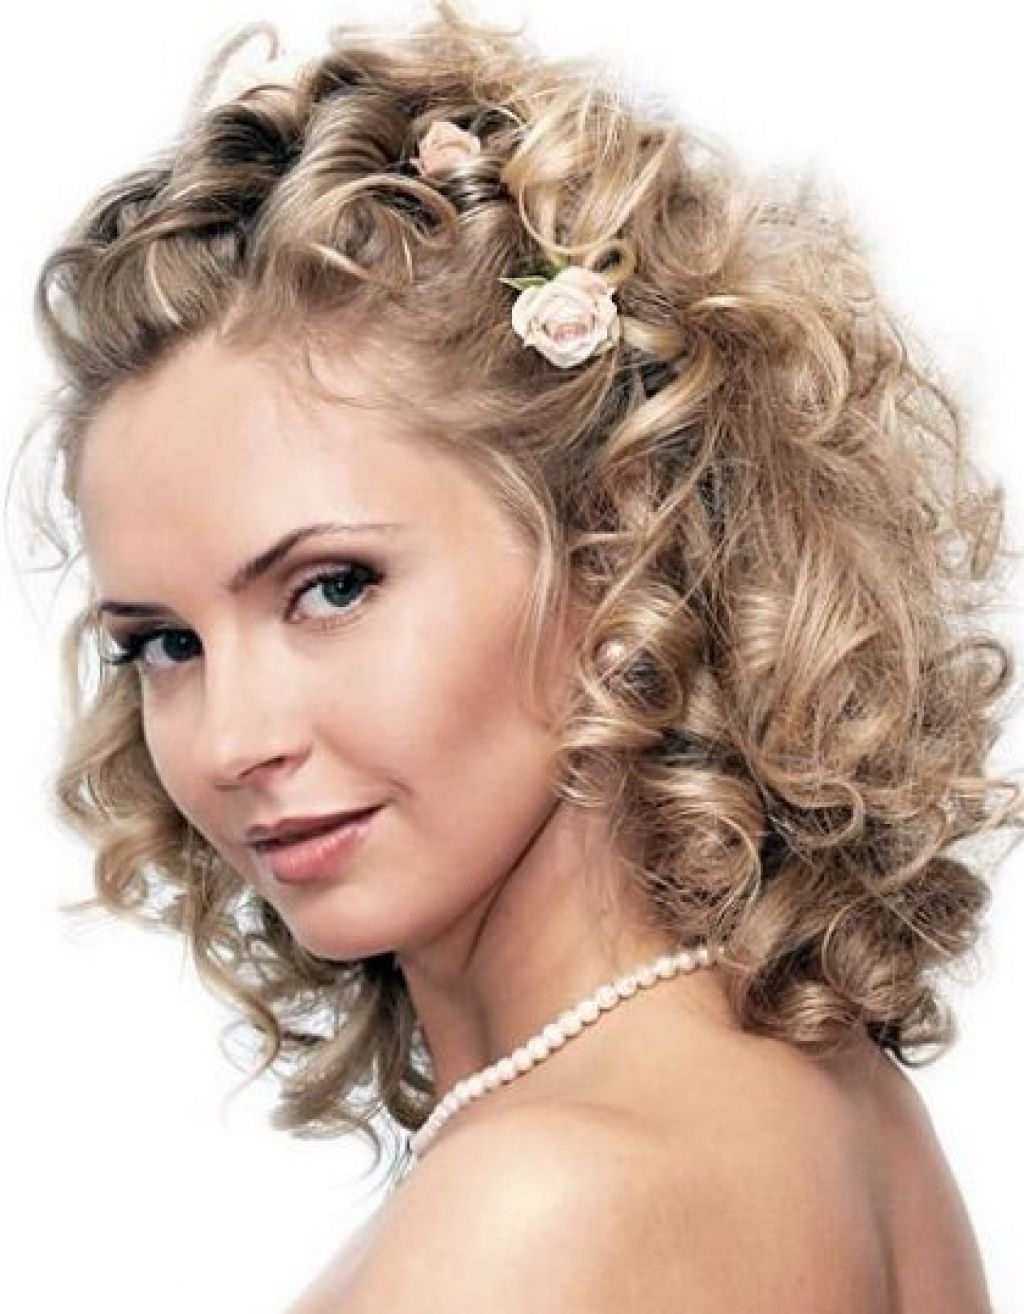 Women Curly Wedding Hairstyles For Medium Length Hair Naturally Throughout Latest Wedding Hairstyles For Medium Short Hair (View 15 of 15)